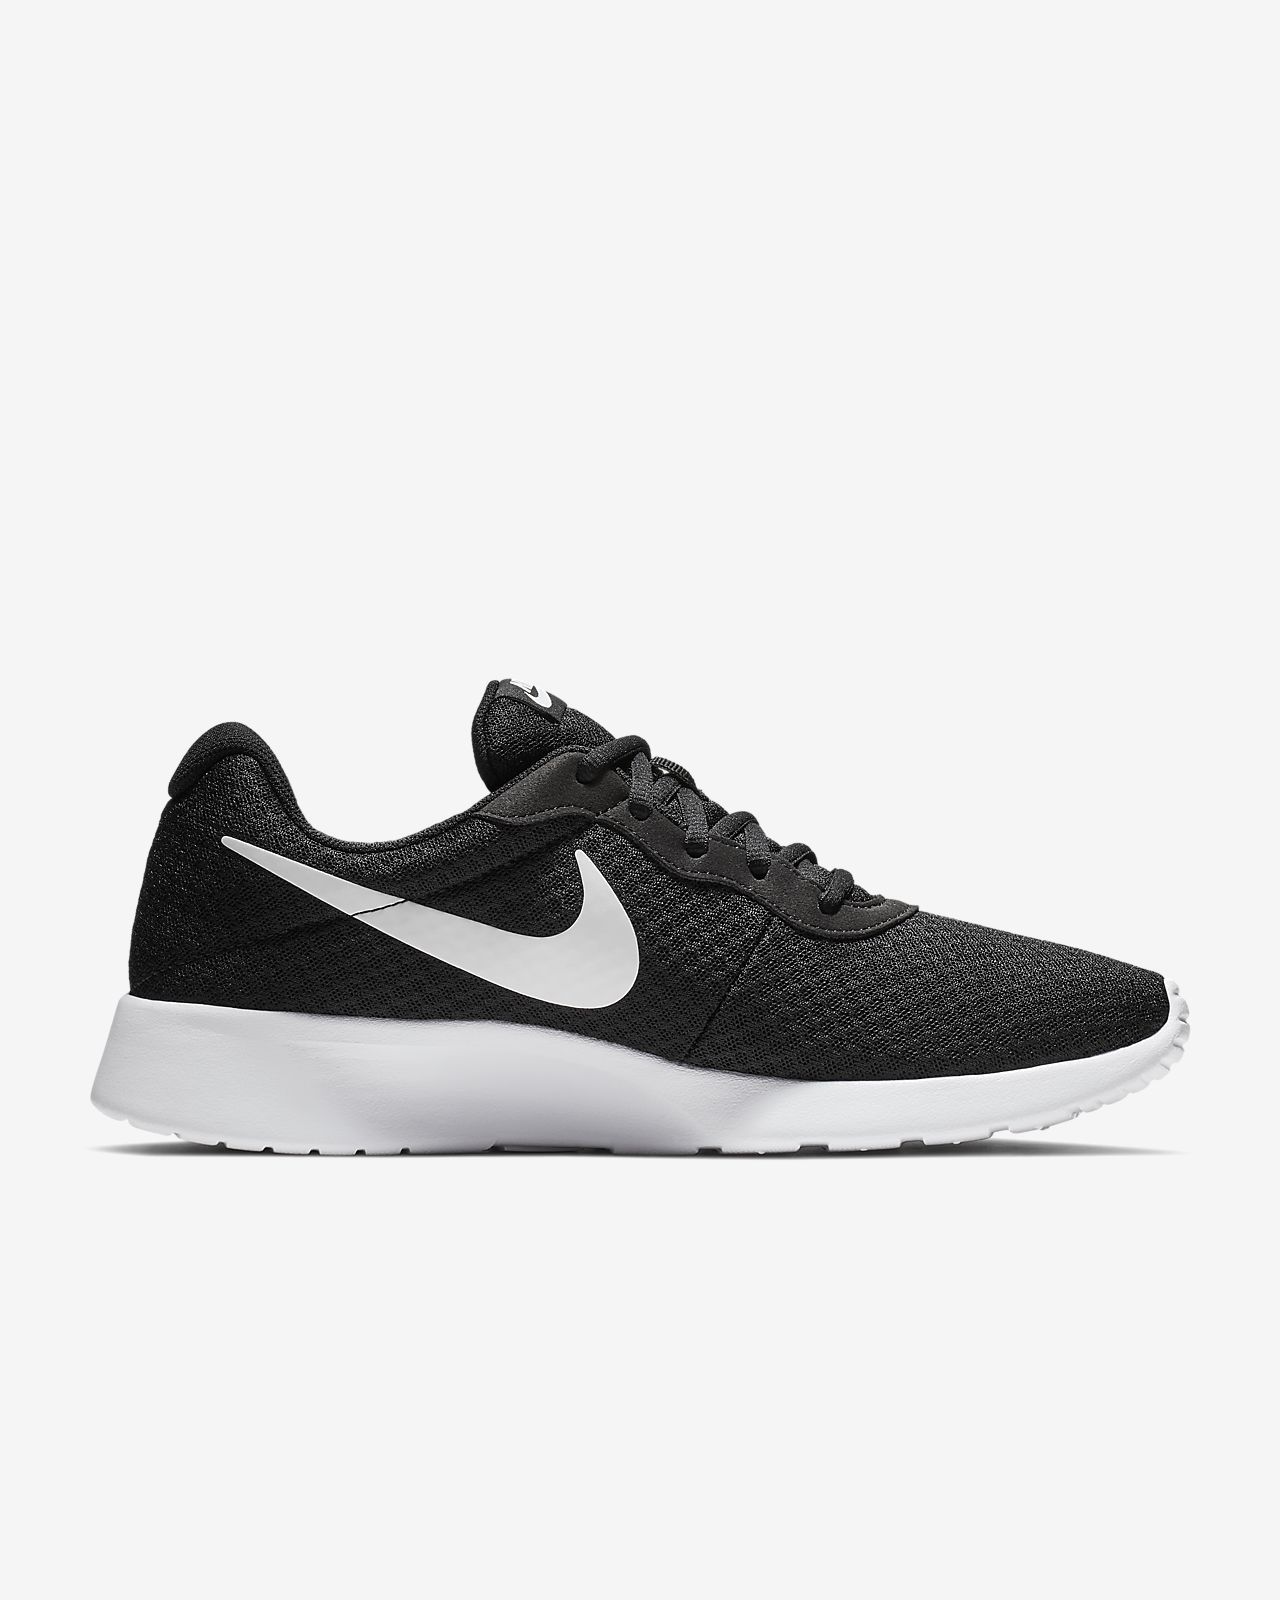 nike tanjun racer men's shoes nz